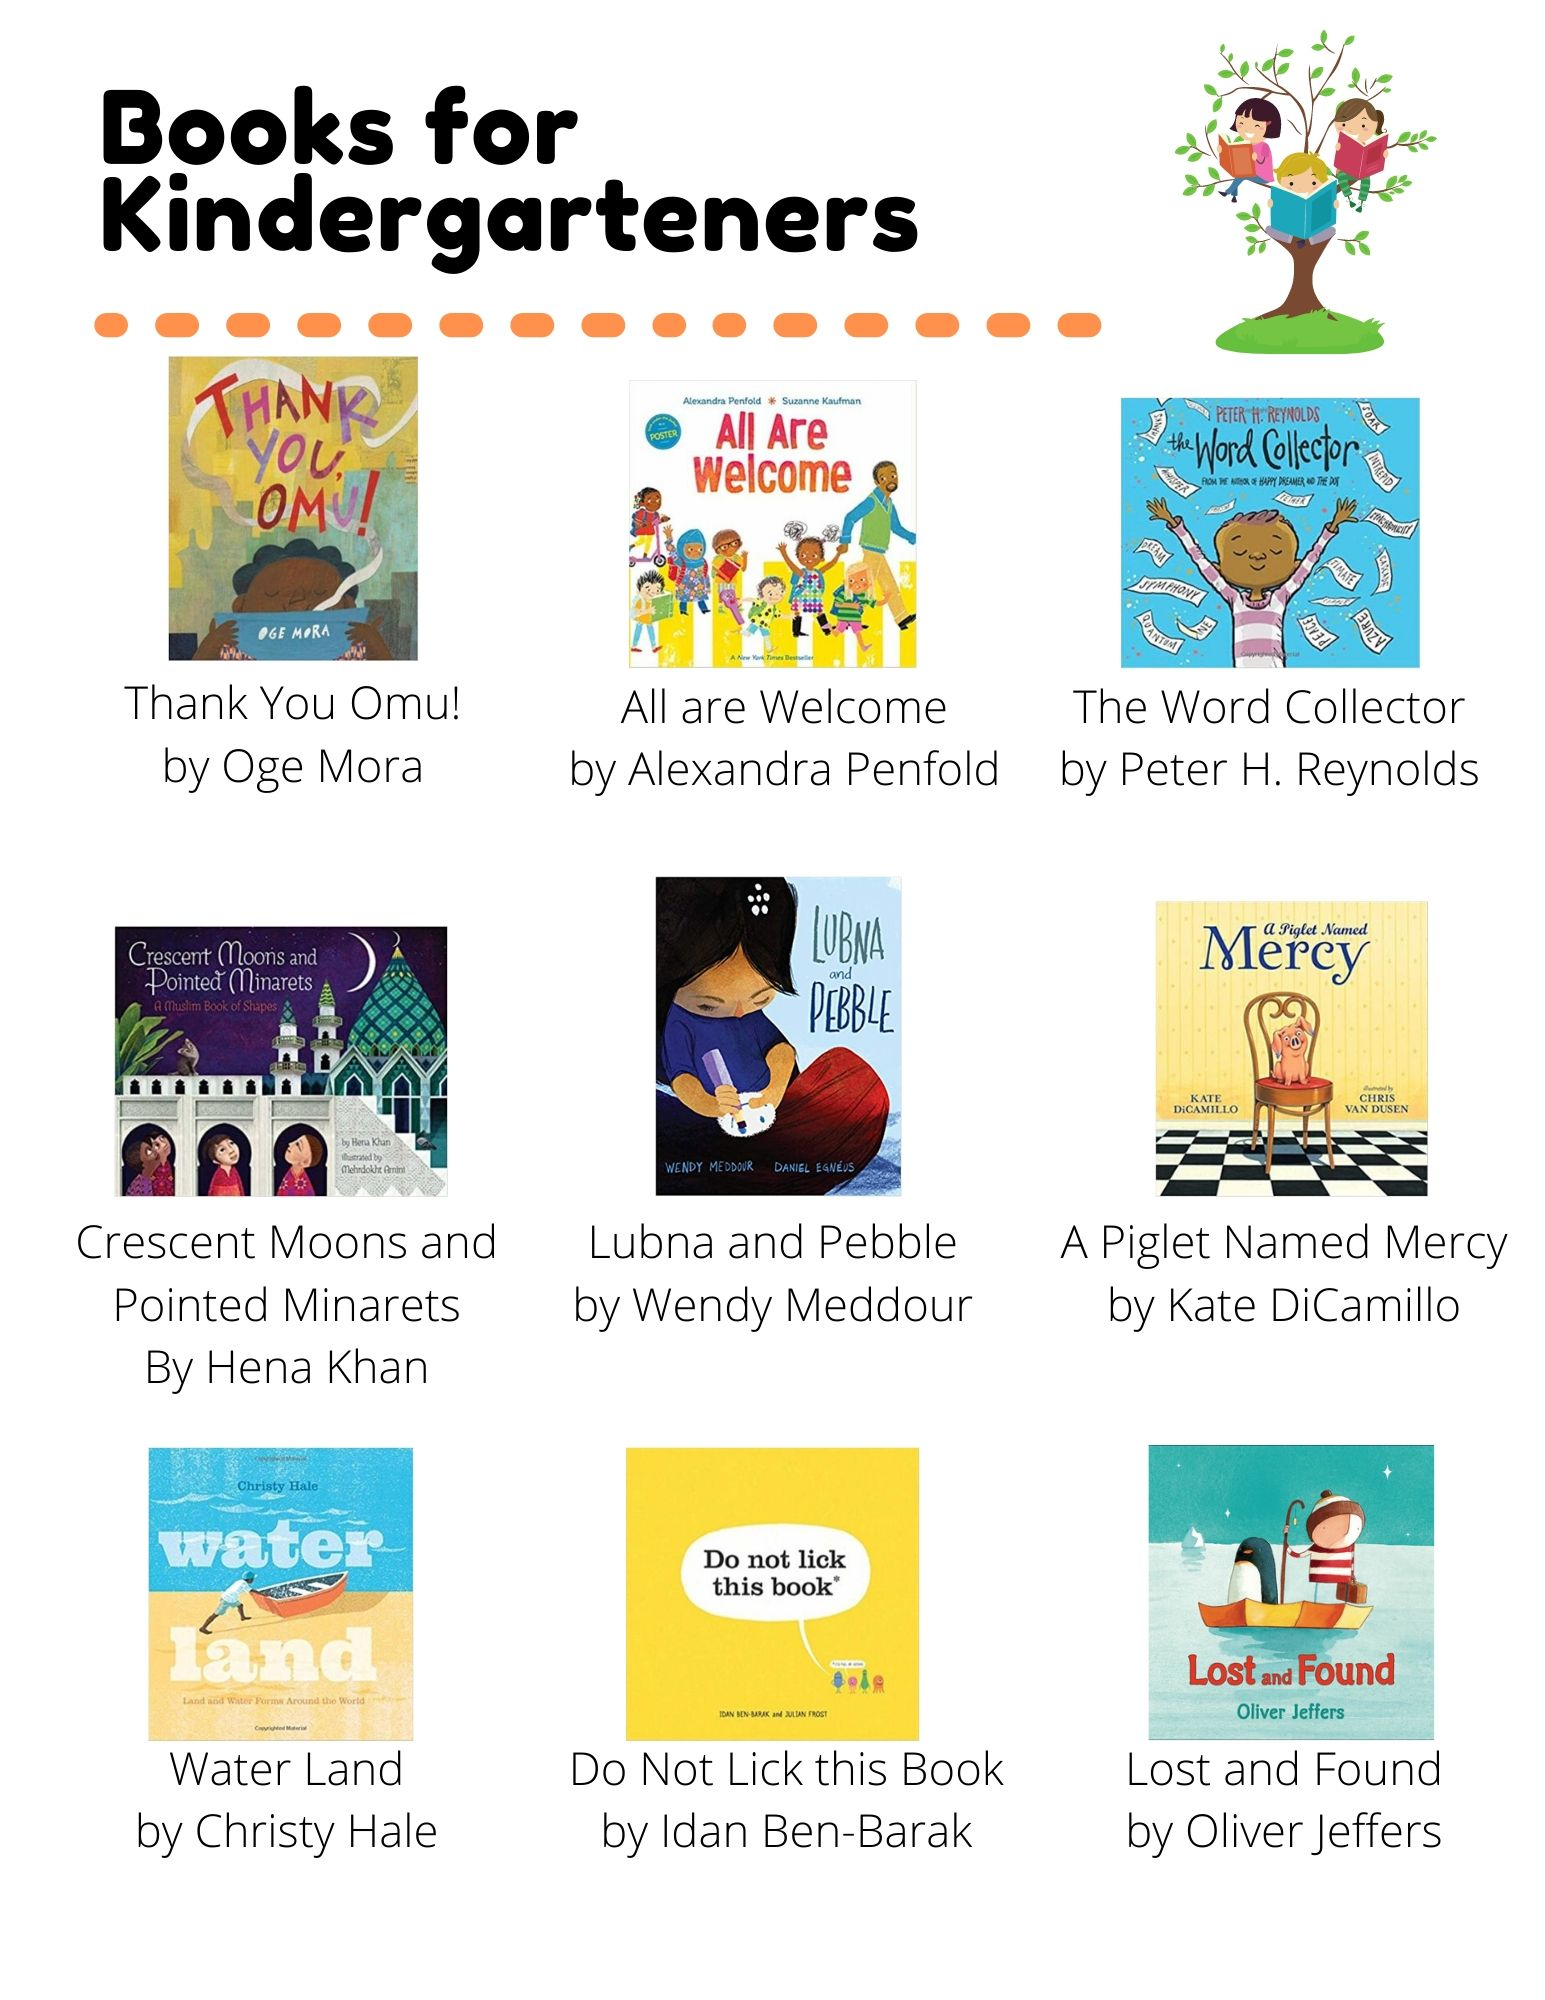 Books for Kindergarteners: Thank You Omu! by Oge Mora. All are Welcome by Alexandra Penfold. The Word Collector by Peter H. Reynolds. Crescent Moons and Pointed Minarets By Hena Khan. Lubna and Pebble by Wendy Meddour. A Piglet Named Mercy by Kate DiCamillo. Water Land by Christy Hale. Do Not Lick this Book by Idan Ben-Barak. Lost and Found by Oliver Jeffers. Book! Book! Book! by Deborah Bruss. I Can Read with  My Eyes Shut by Dr. Seuss. Snowmen at Night by Caralyn Buehner. The Quiet Book by Deborah Underwood. The Very Hungry Caterpillar by Eric Carle. She Persisted by Chelsea Clinton. Rosie Revere Engineer by Andrea Beaty. Maybe Something Beautiful by F. Isabel Campoy. Gaston by Kelly DiPucchio. The Adventures of Beekle by Dan Santat. Spoon by Amy Krouss Rosenthal. We Are in a Book by Mo Willems.